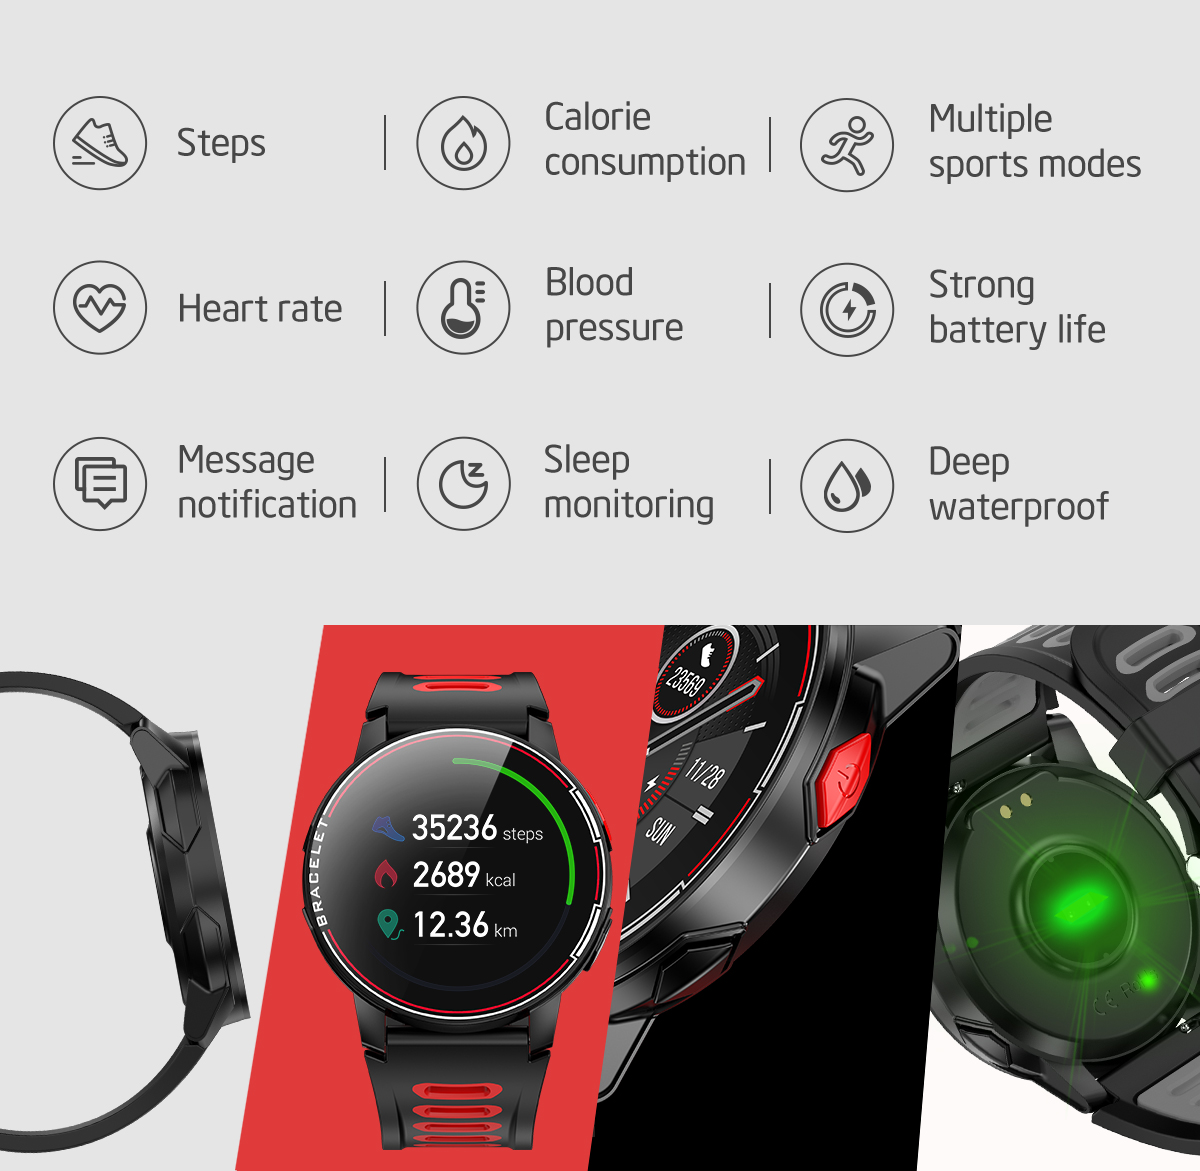 H9b06c29d0c6c4df08081dd42d3a6736ff 2020 New L6 Smart Watch IP68 Waterproof Sport Men Women Bluetooth Smartwatch Fitness Tracker Heart Rate Monitor For Android IOS